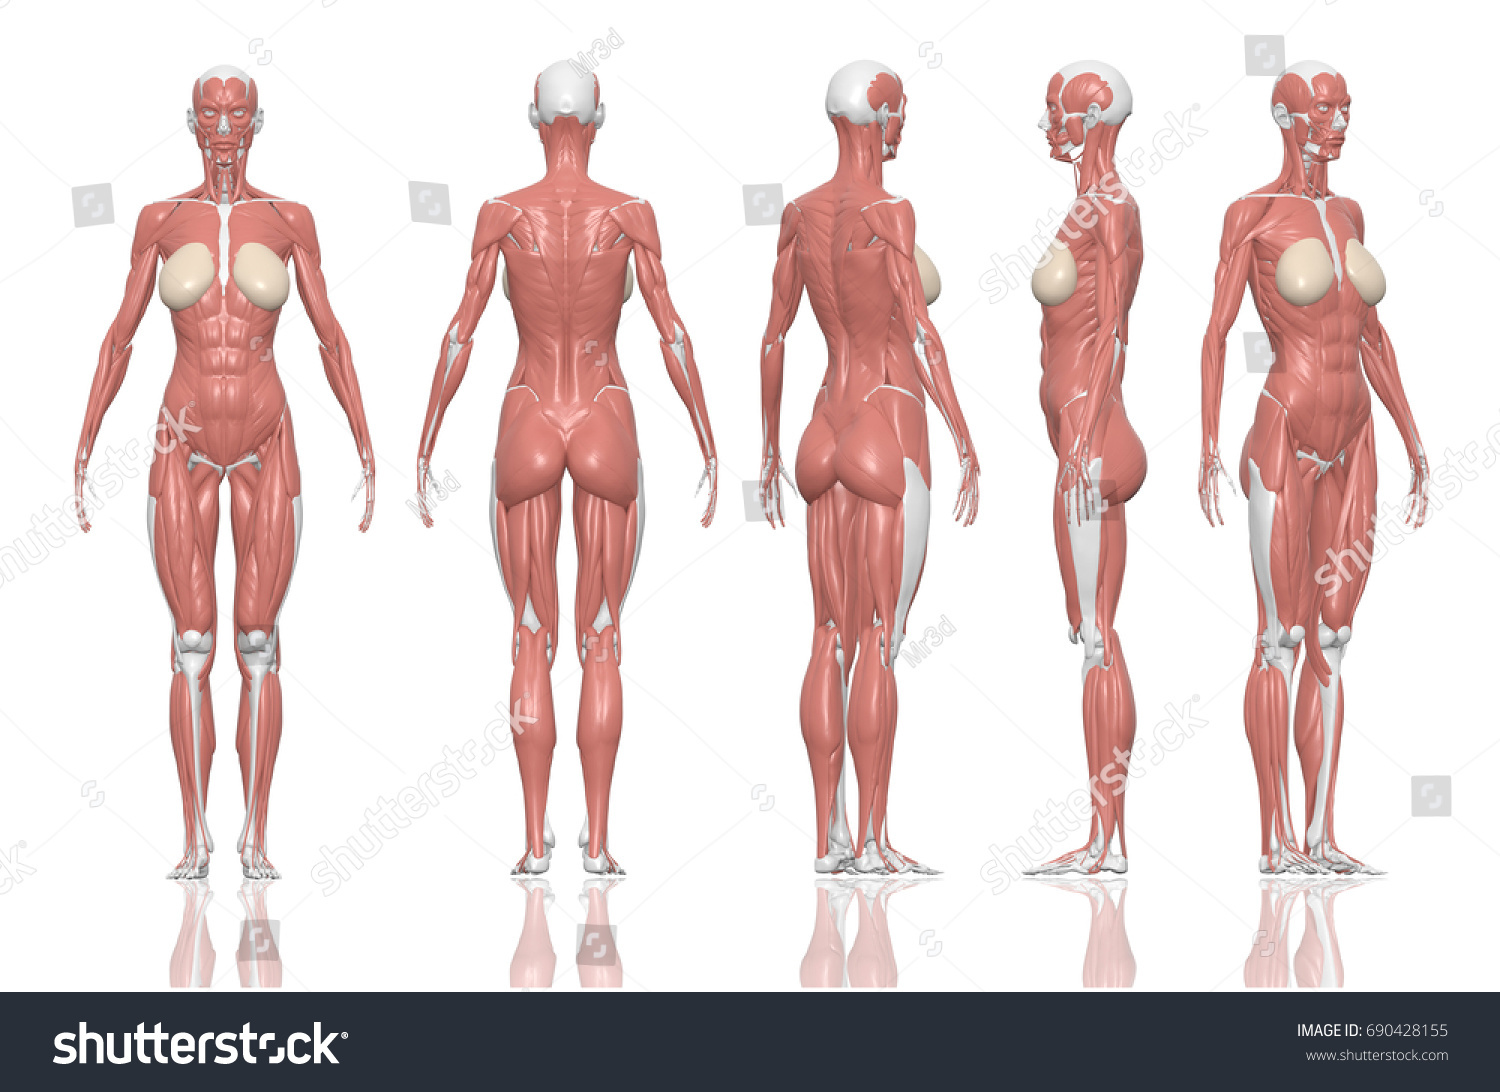 Royalty Free Stock Illustration Of Human Anatomy Female Muscles 3 D